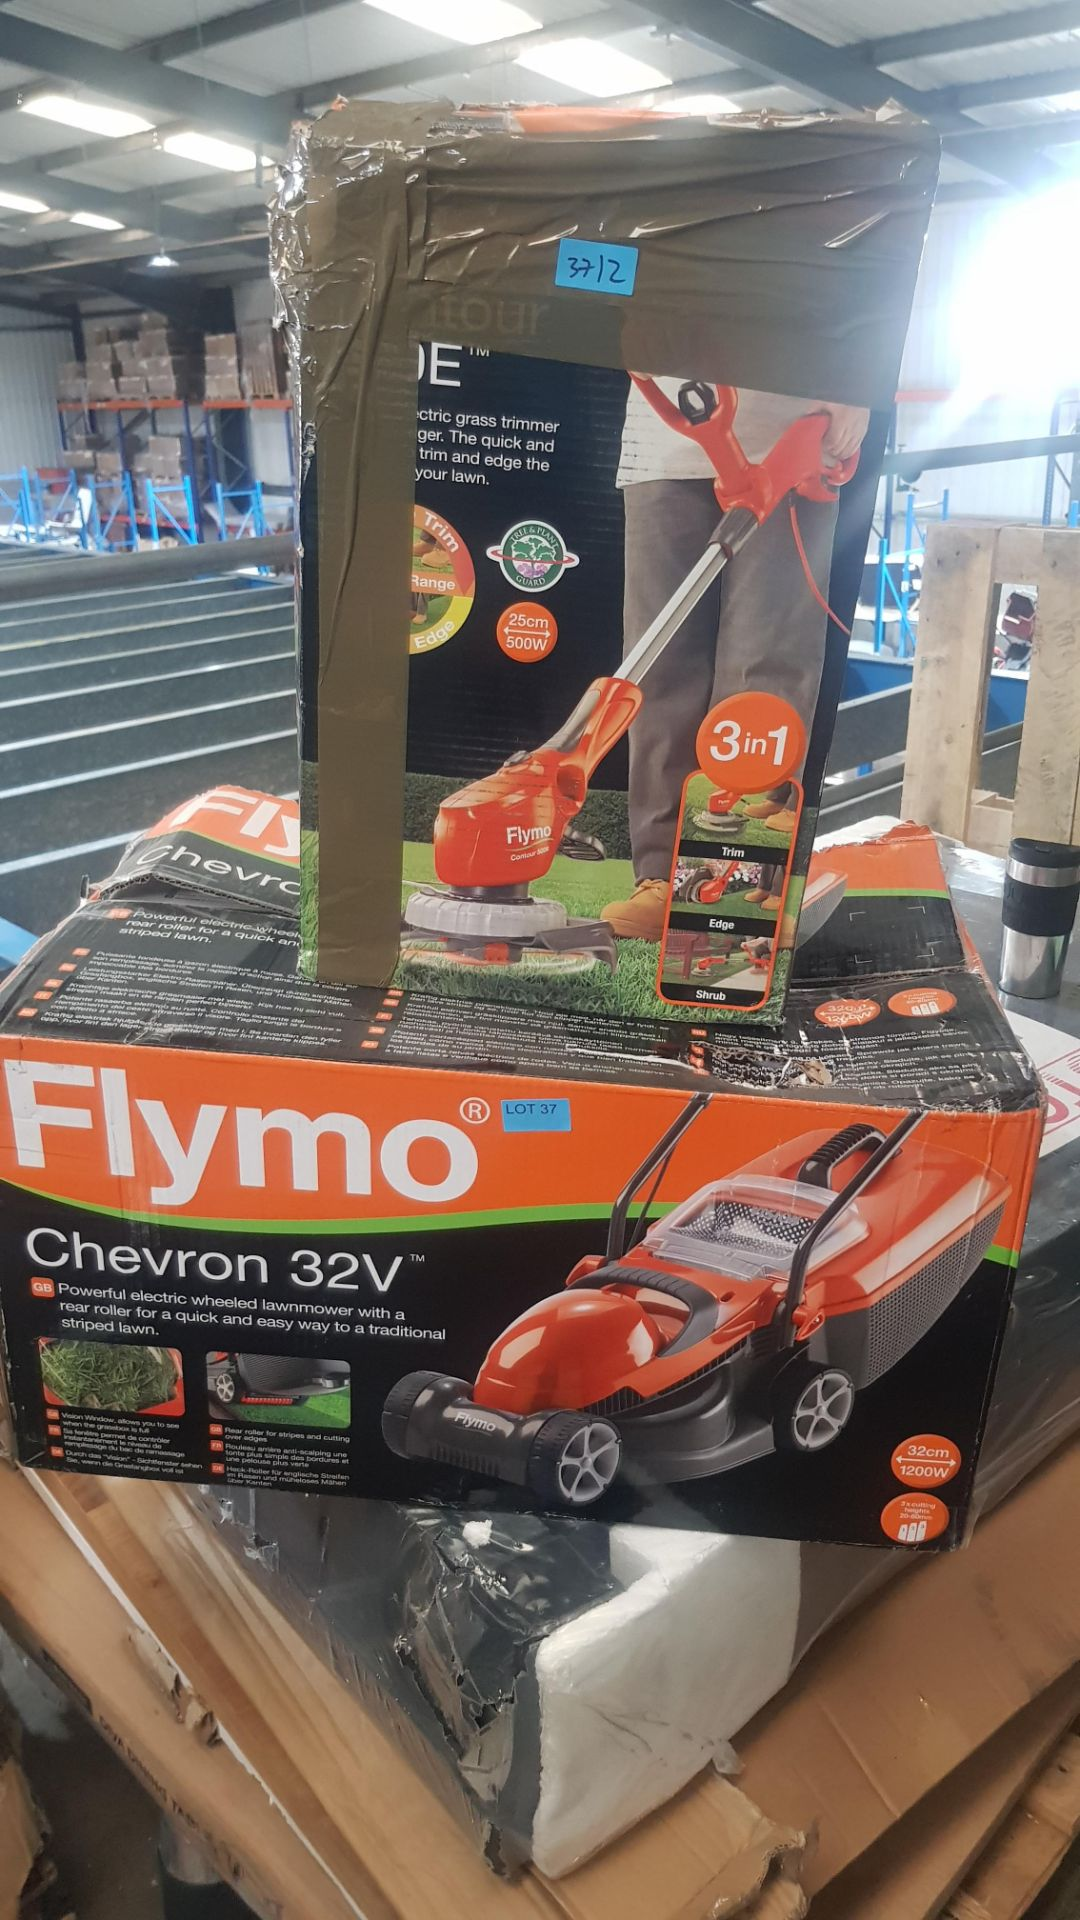 (P8) 2x Flymo Items. 1x Chevron 32V Electric Wheeled Lawnmower. 1x Contour 500E 3 In 1 Trimmer. - Image 3 of 3